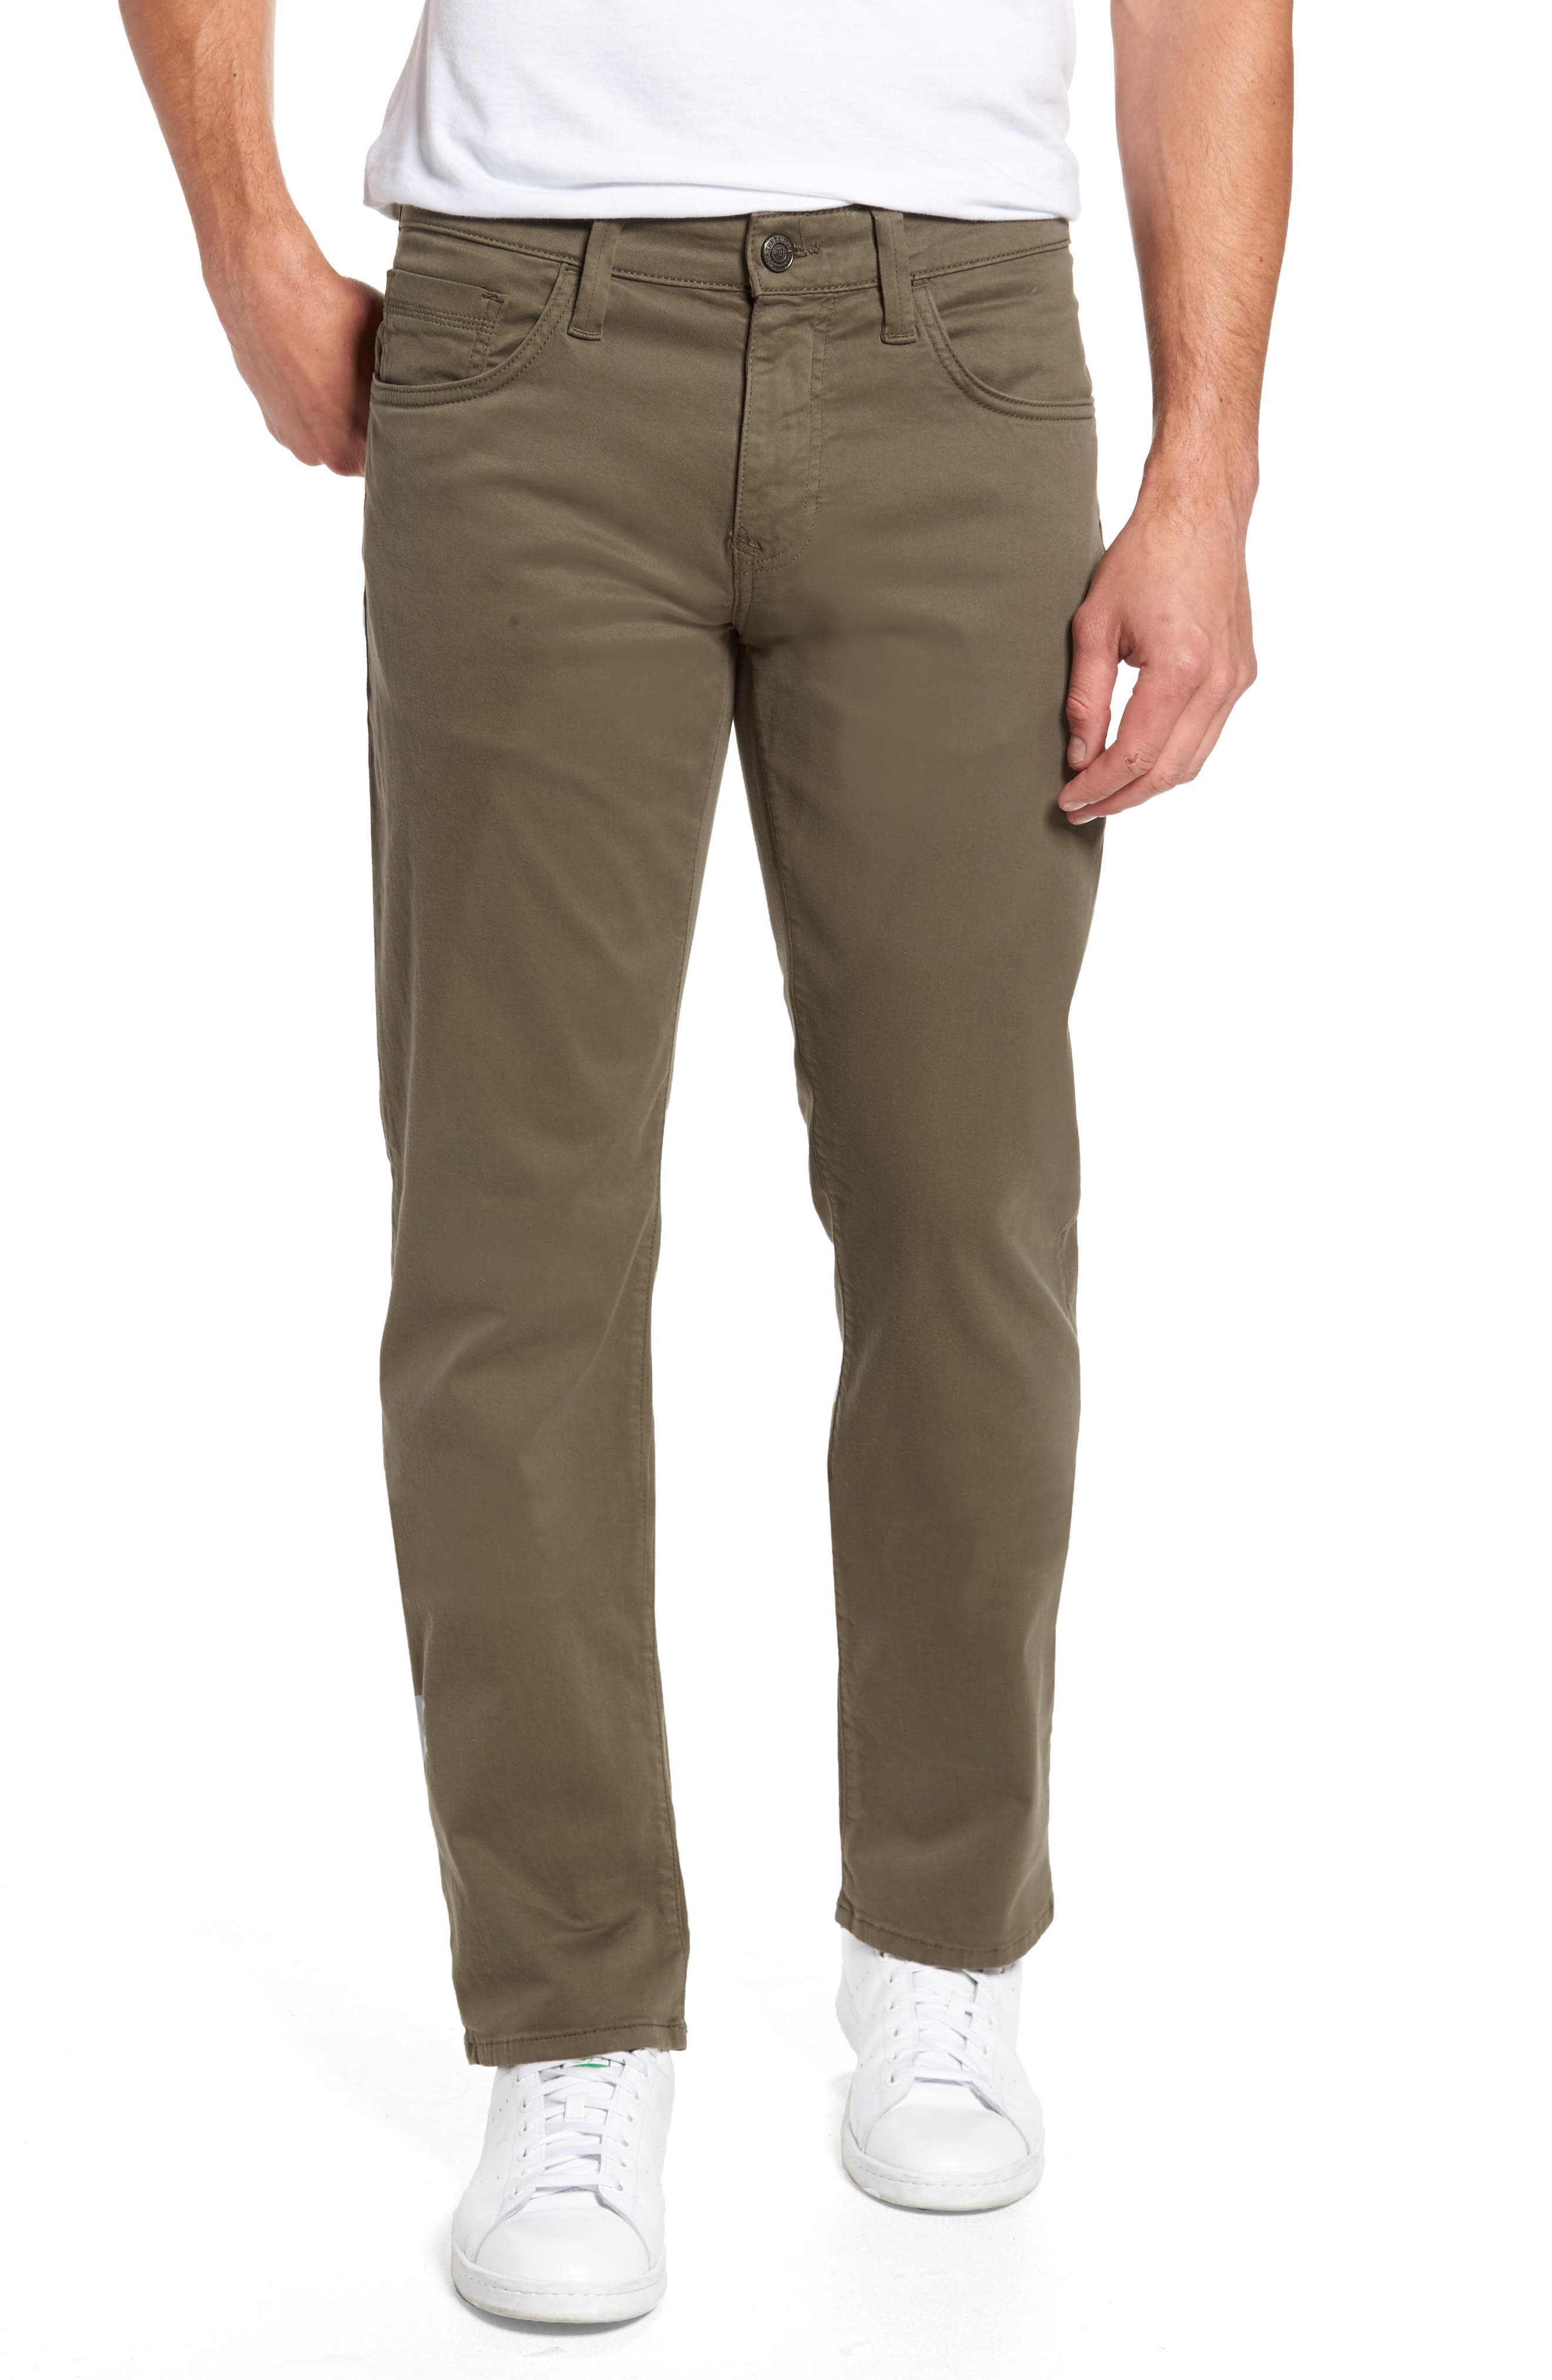 Alternate Image 1 Selected - Mavi Jeans Zach Straight Fit Twill Pants (Dusty Olive Twill)